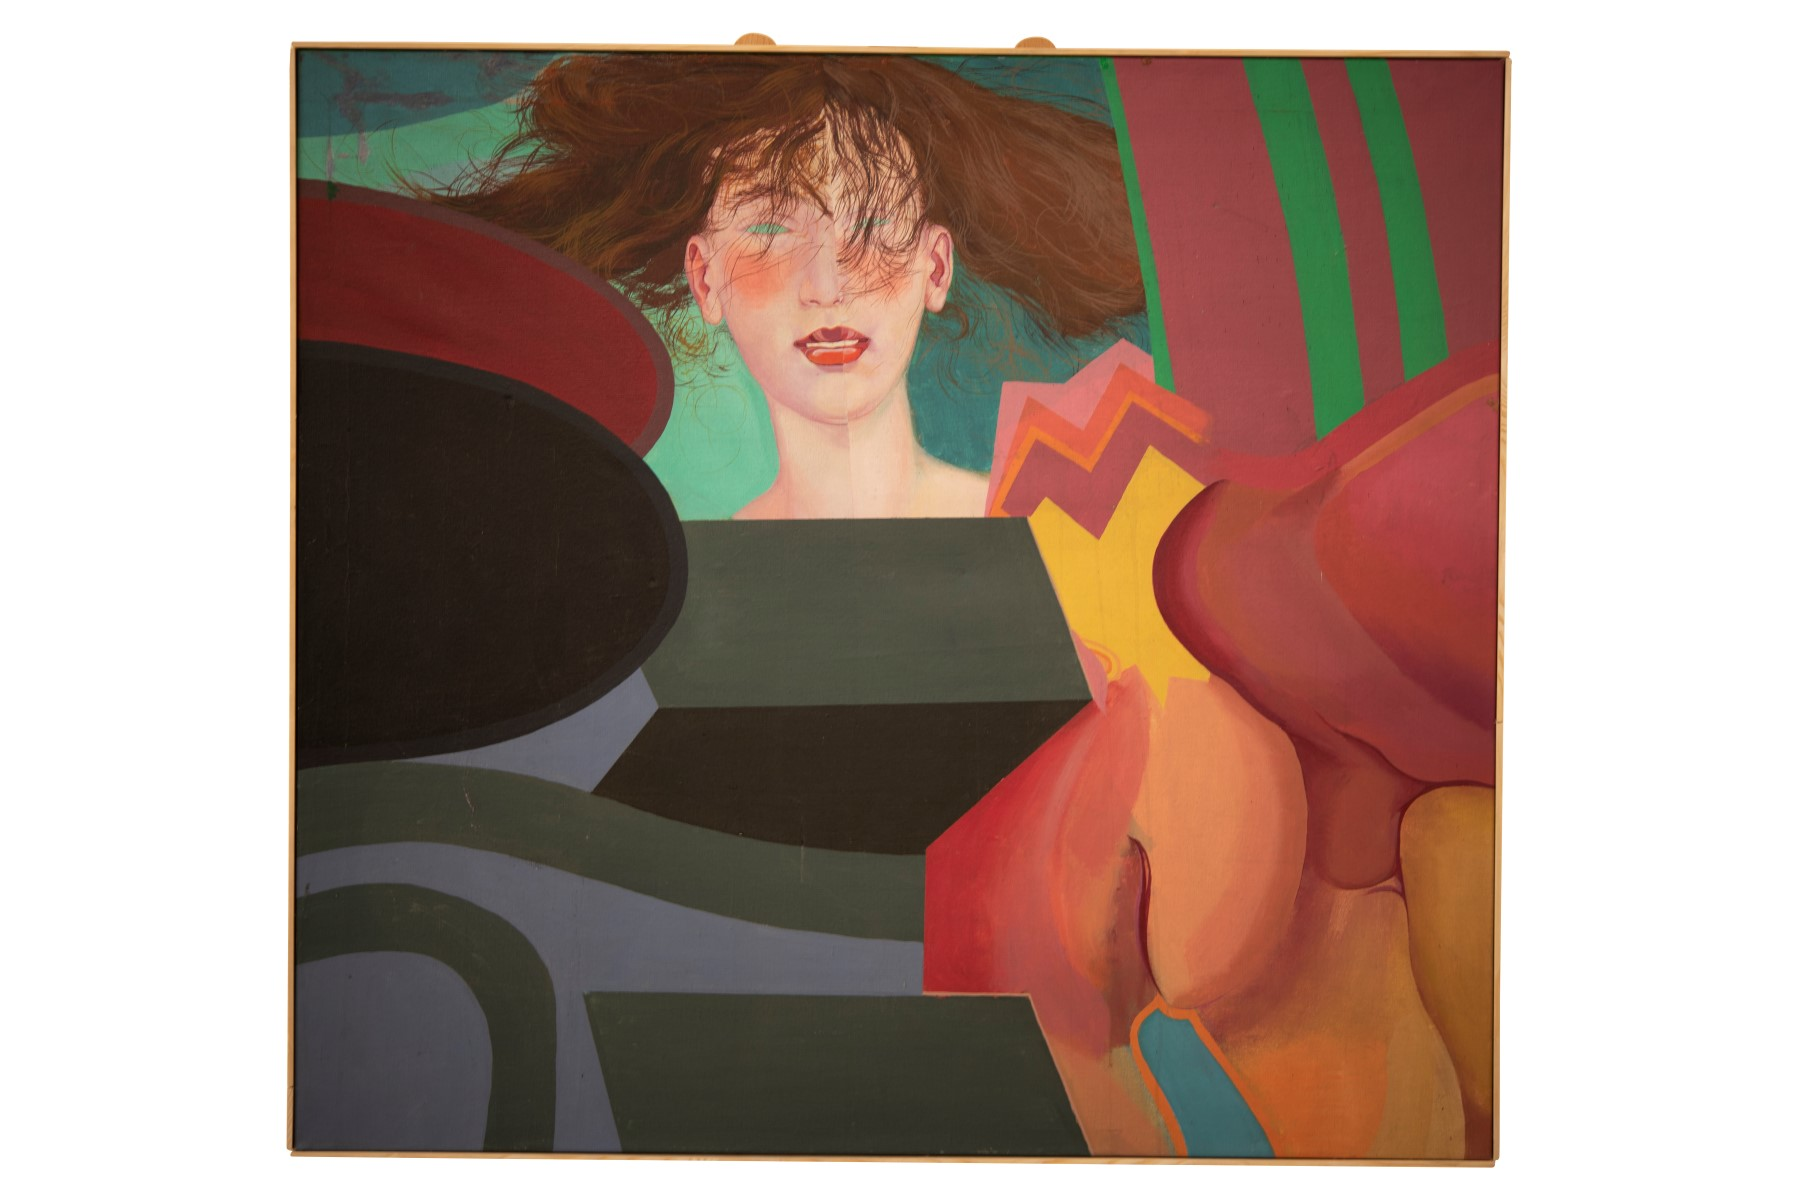 #102 Erhard Stöbe* (1943), Abstract Composition with Woman